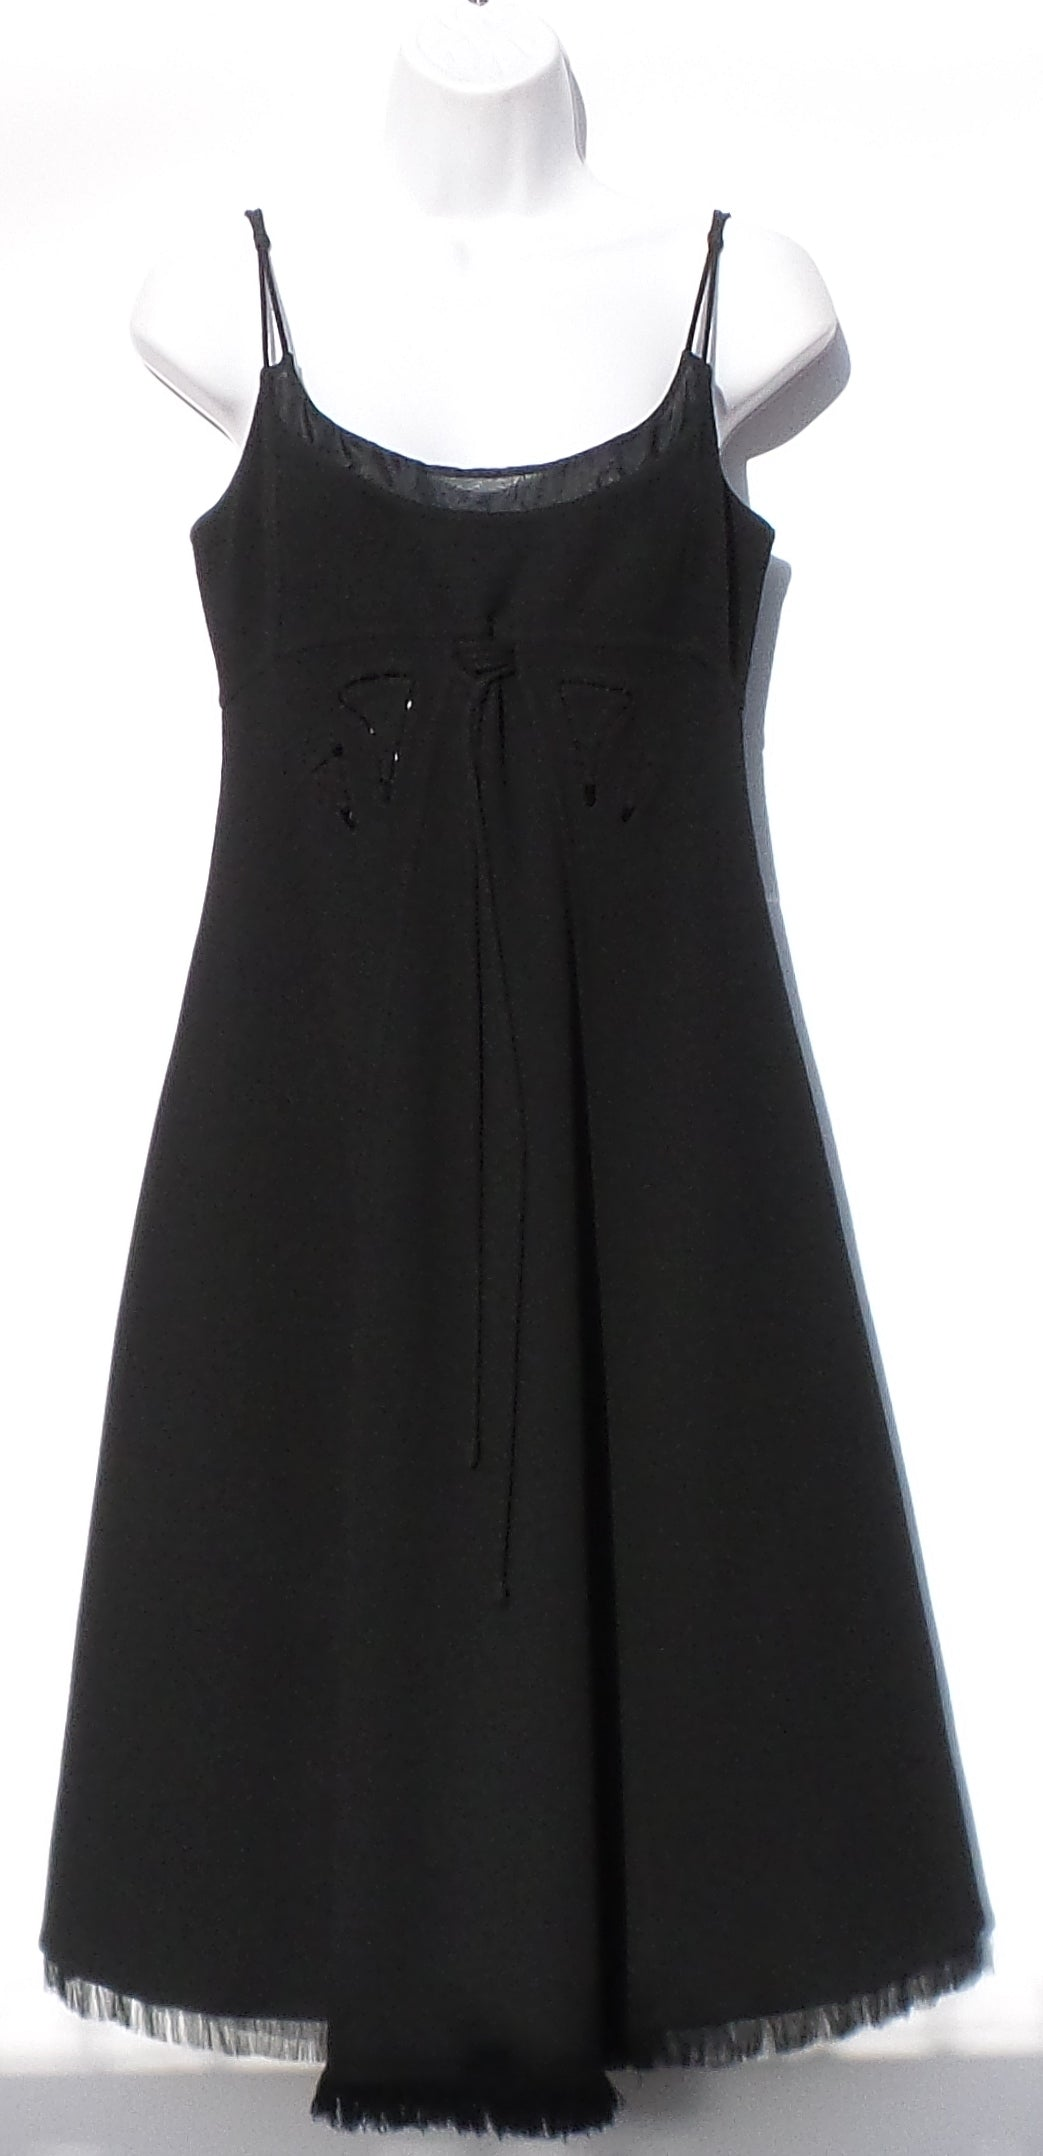 'Sold' CHADO RALPH RUCCI Black Wool Stitched Cut Out Detail Tank Dress + Jacket Set 6